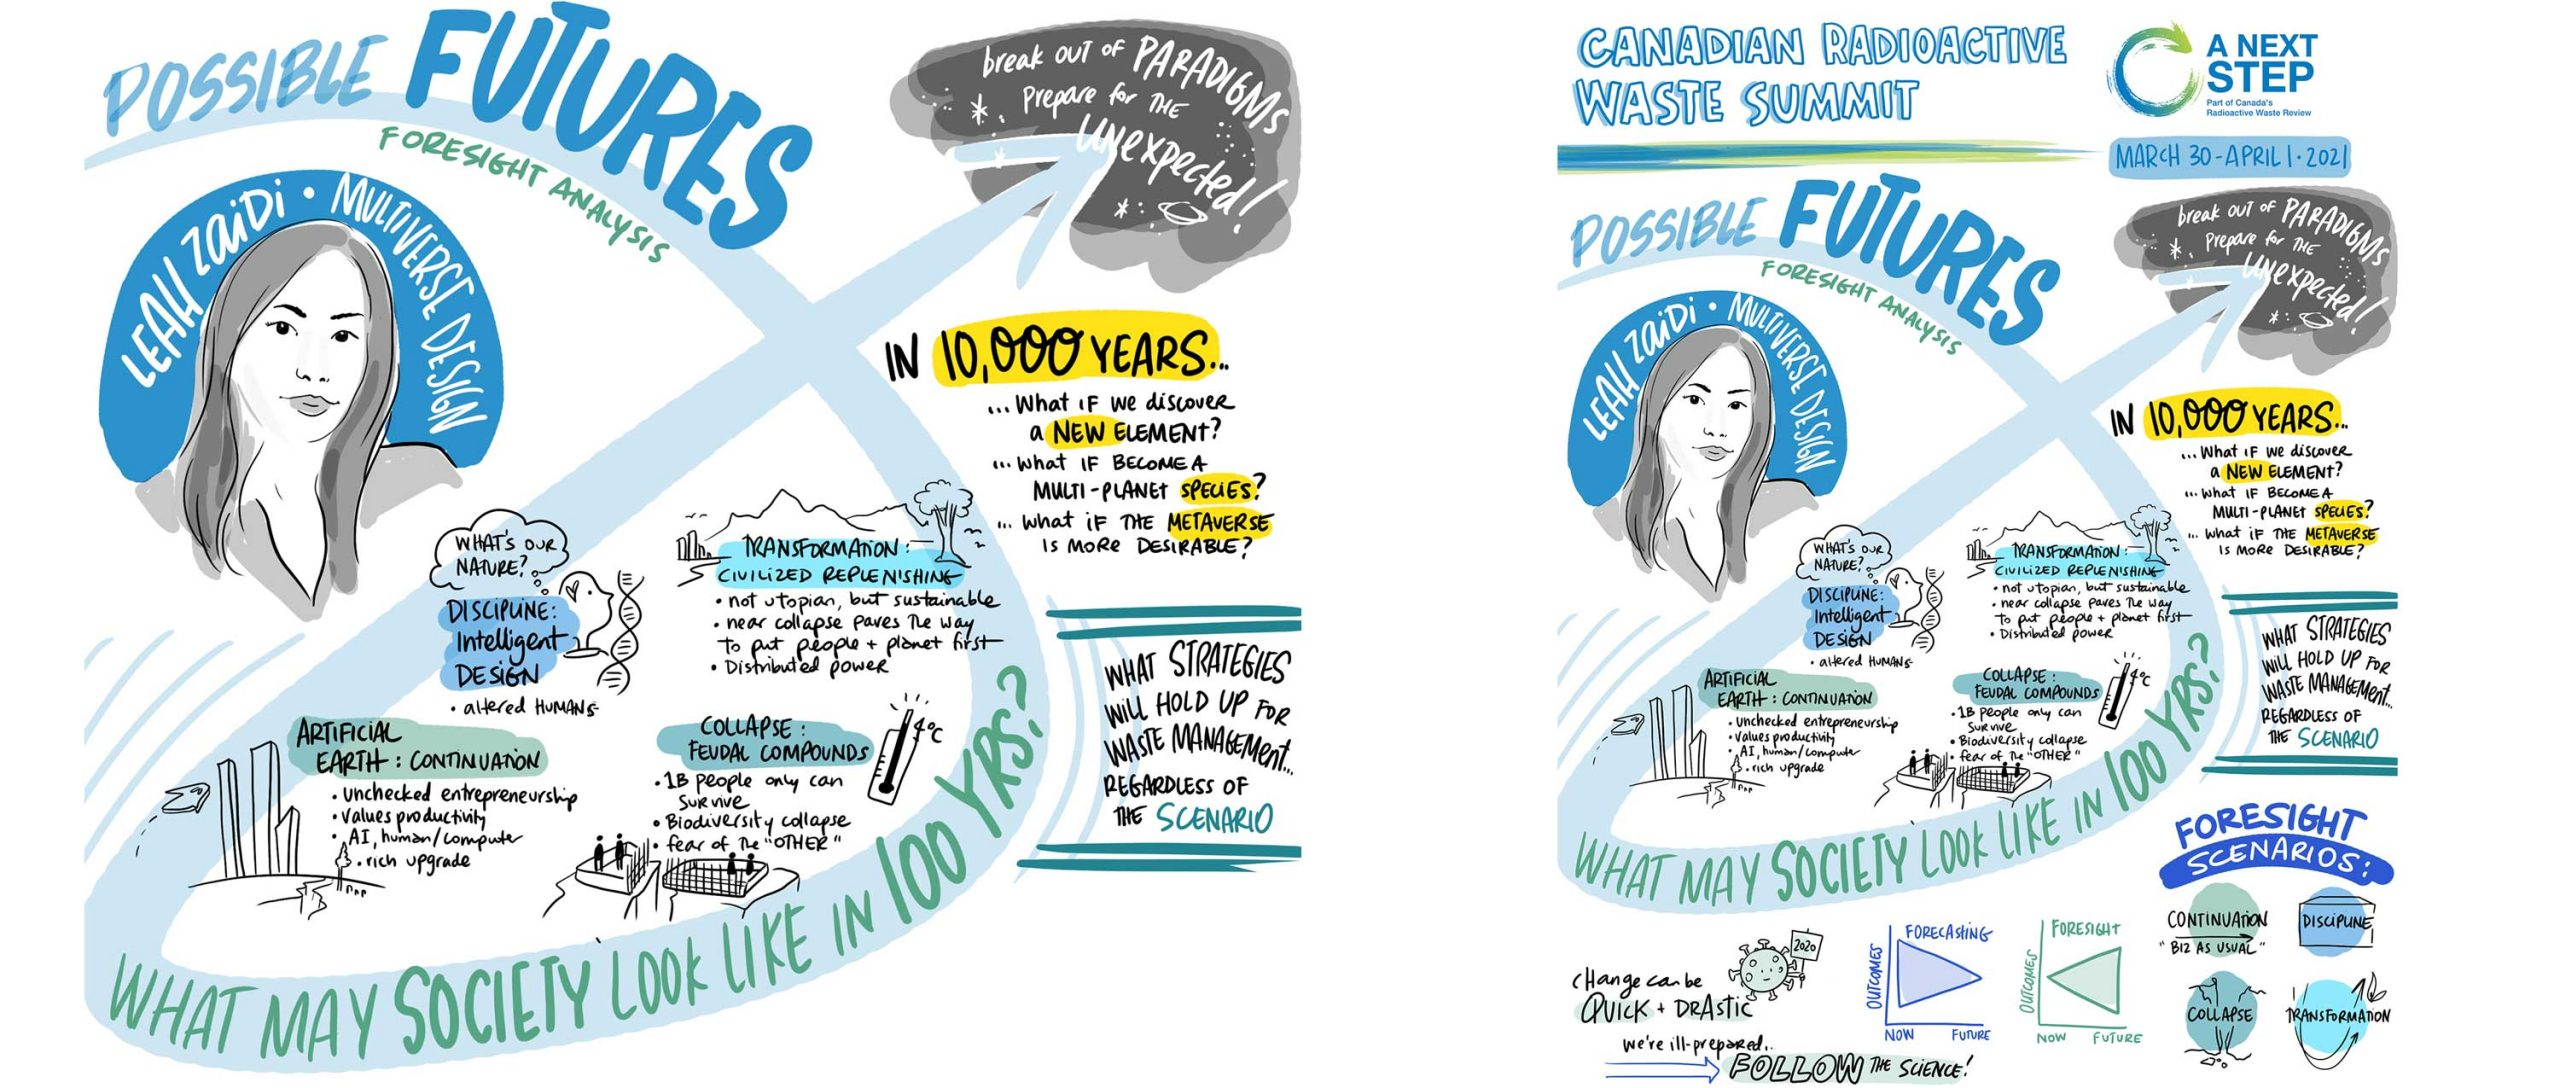 Canadian Radioactive Waste Summit Graphic Recordings Drawing Change foresight image